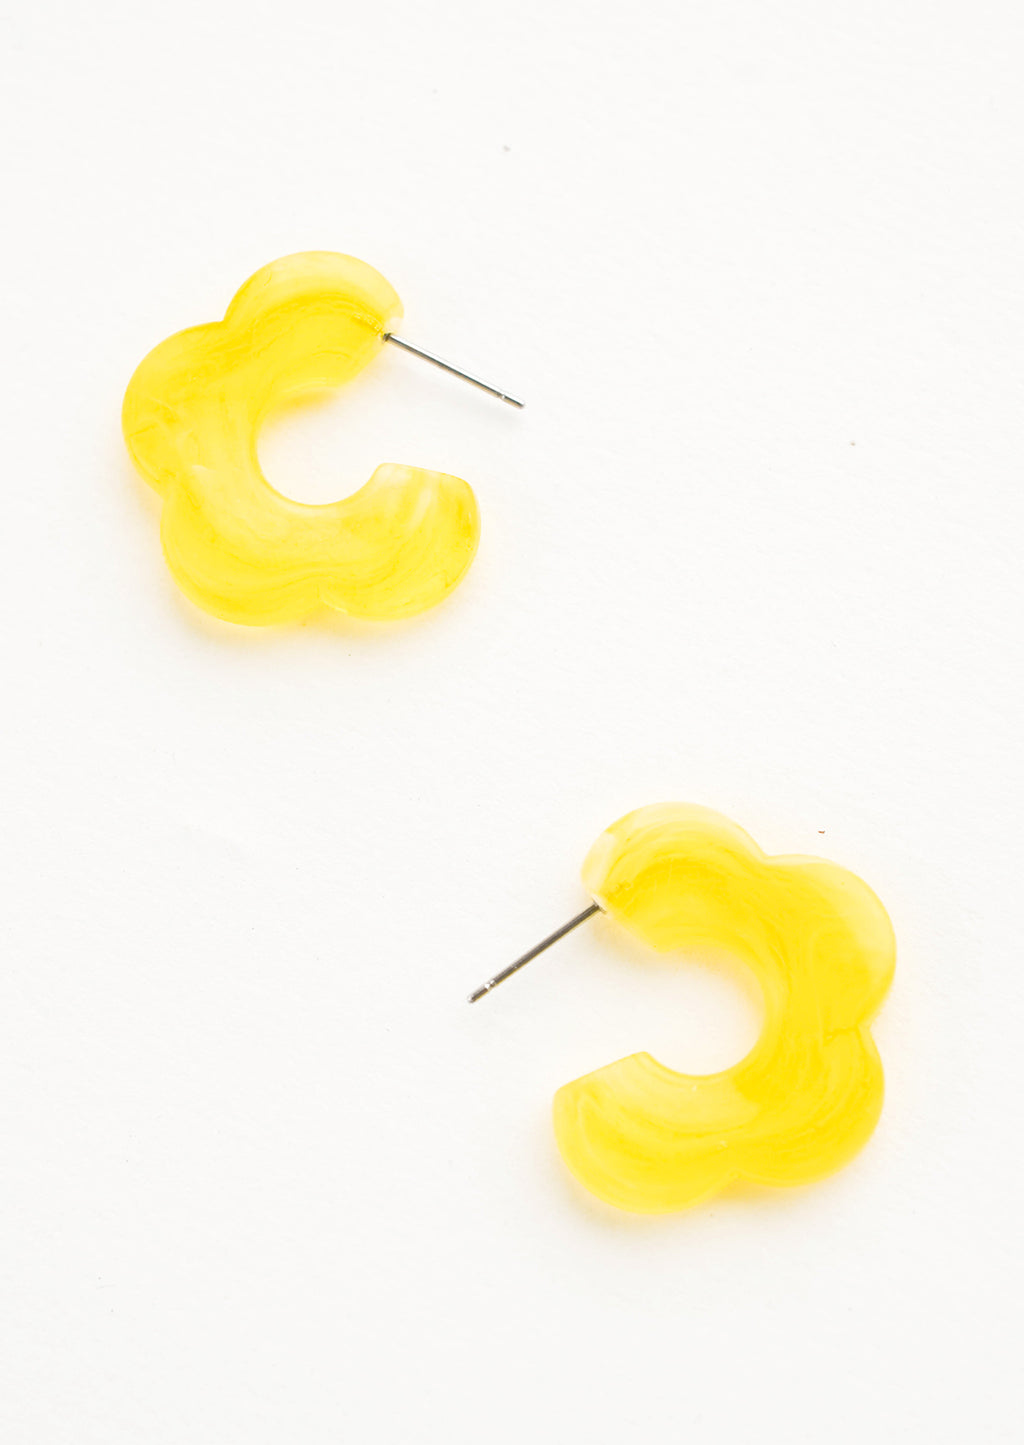 Pineapple: Acetate earrings in the shape of a daisy-like flower, translucent lemon yellow color